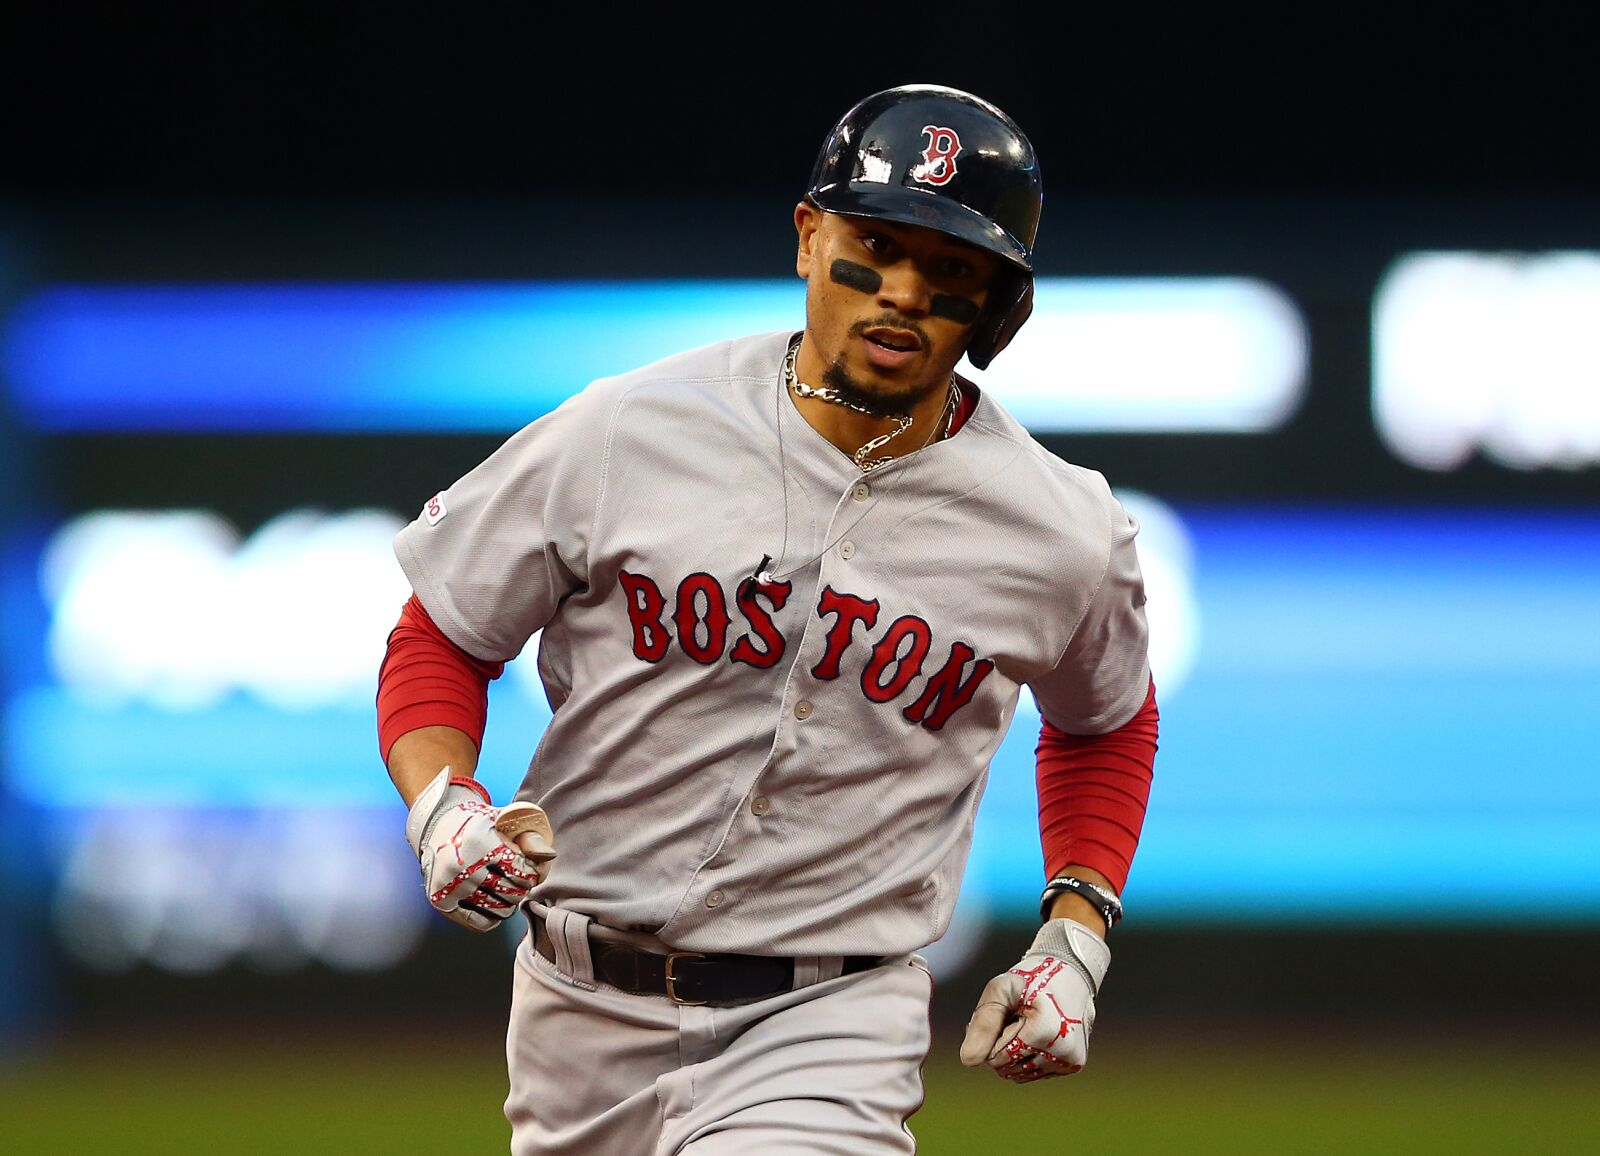 Red Sox star Mookie Betts still sore from foot inflammation